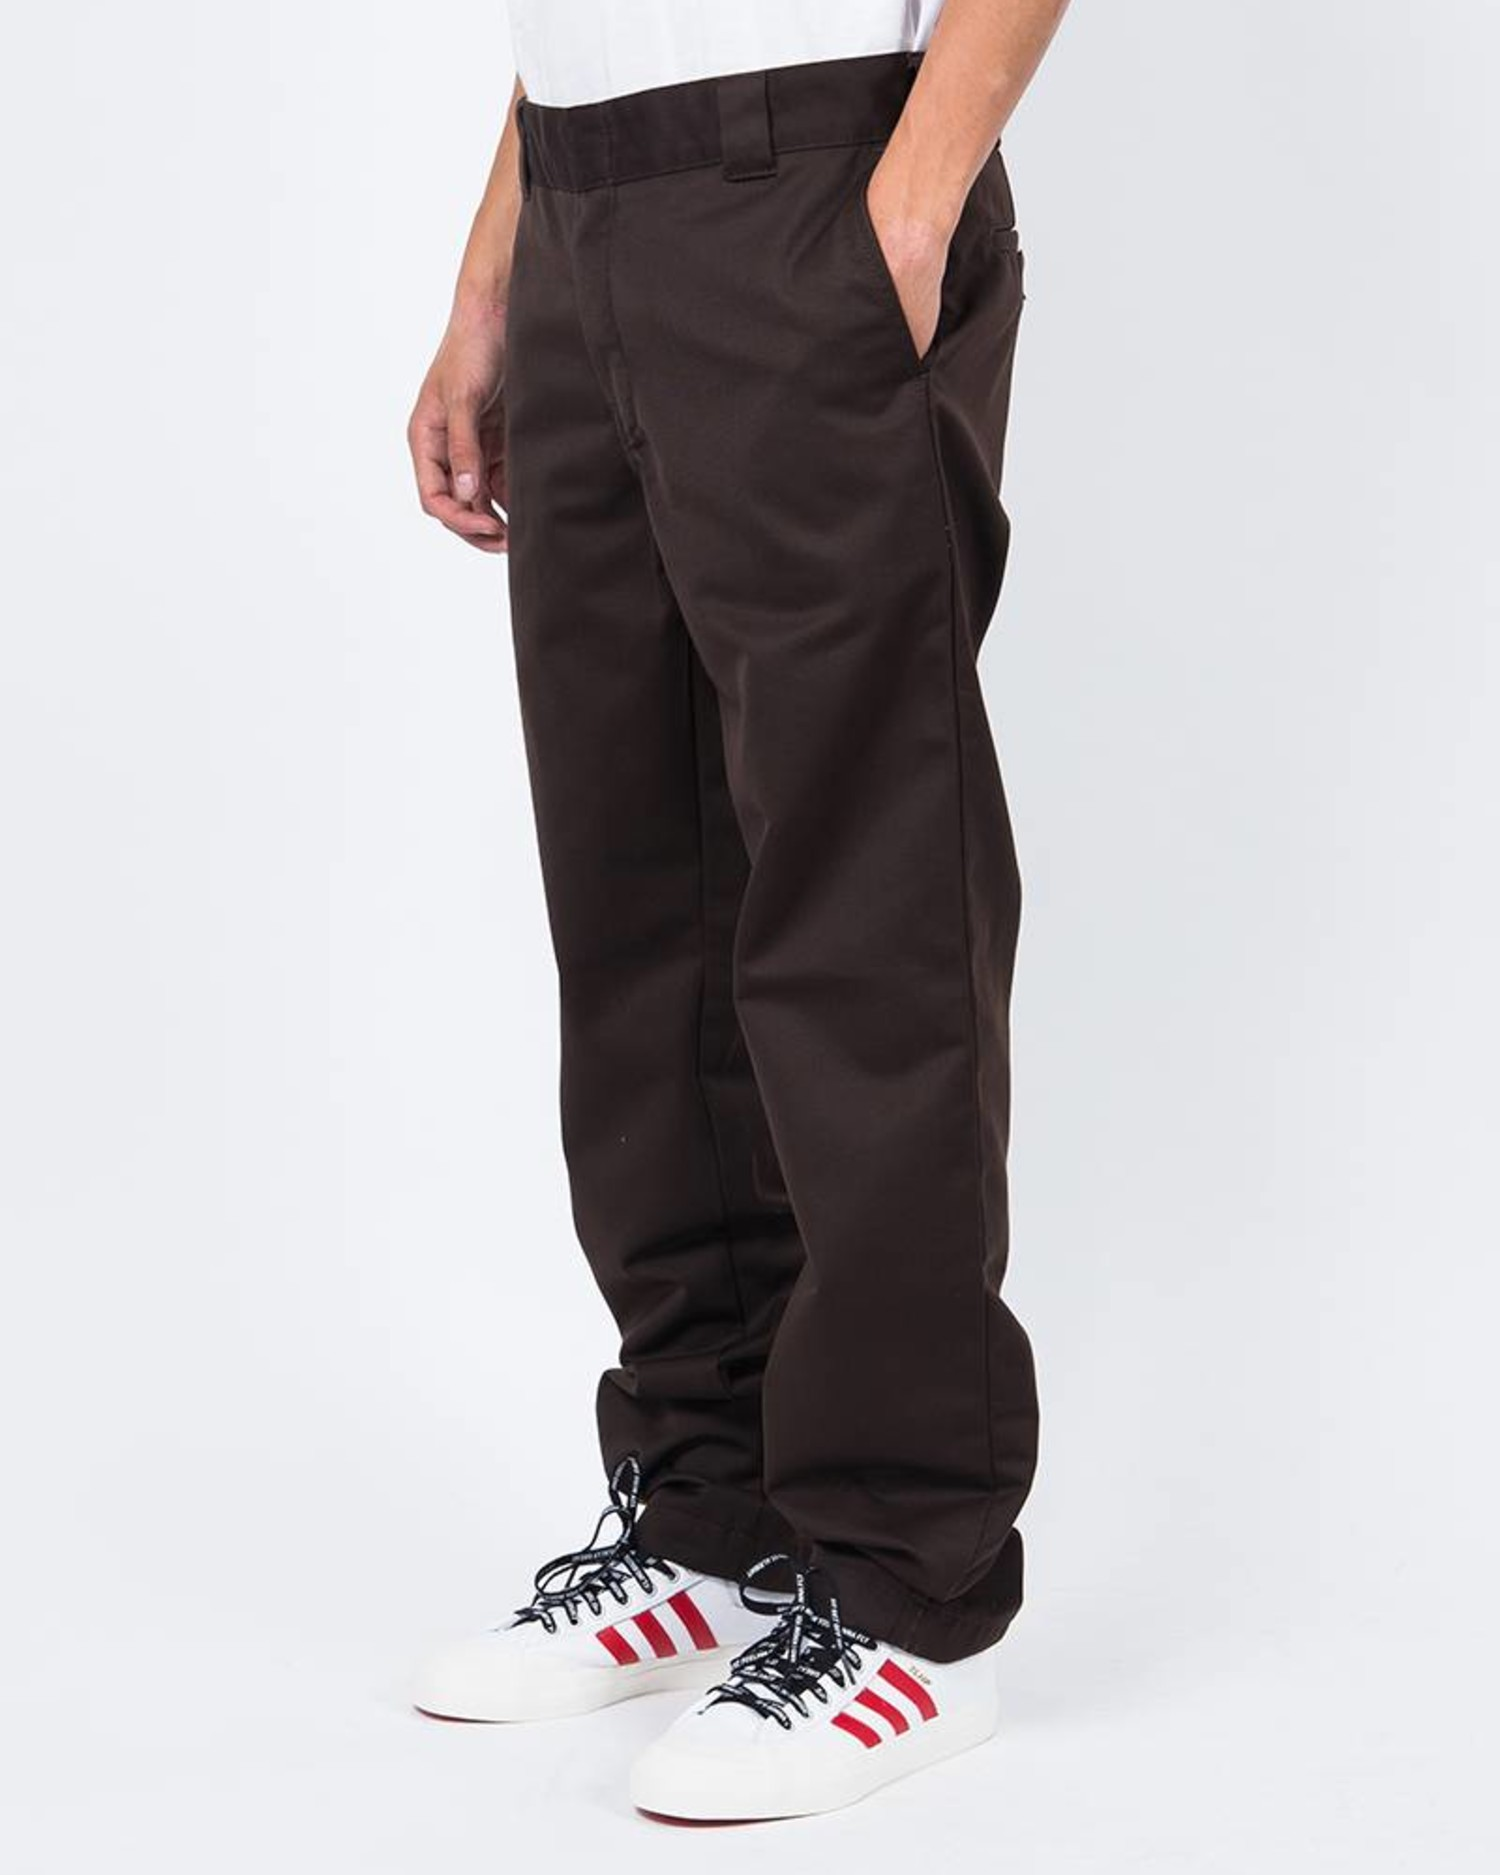 Carhartt Master Pants Tobacco Rinsed